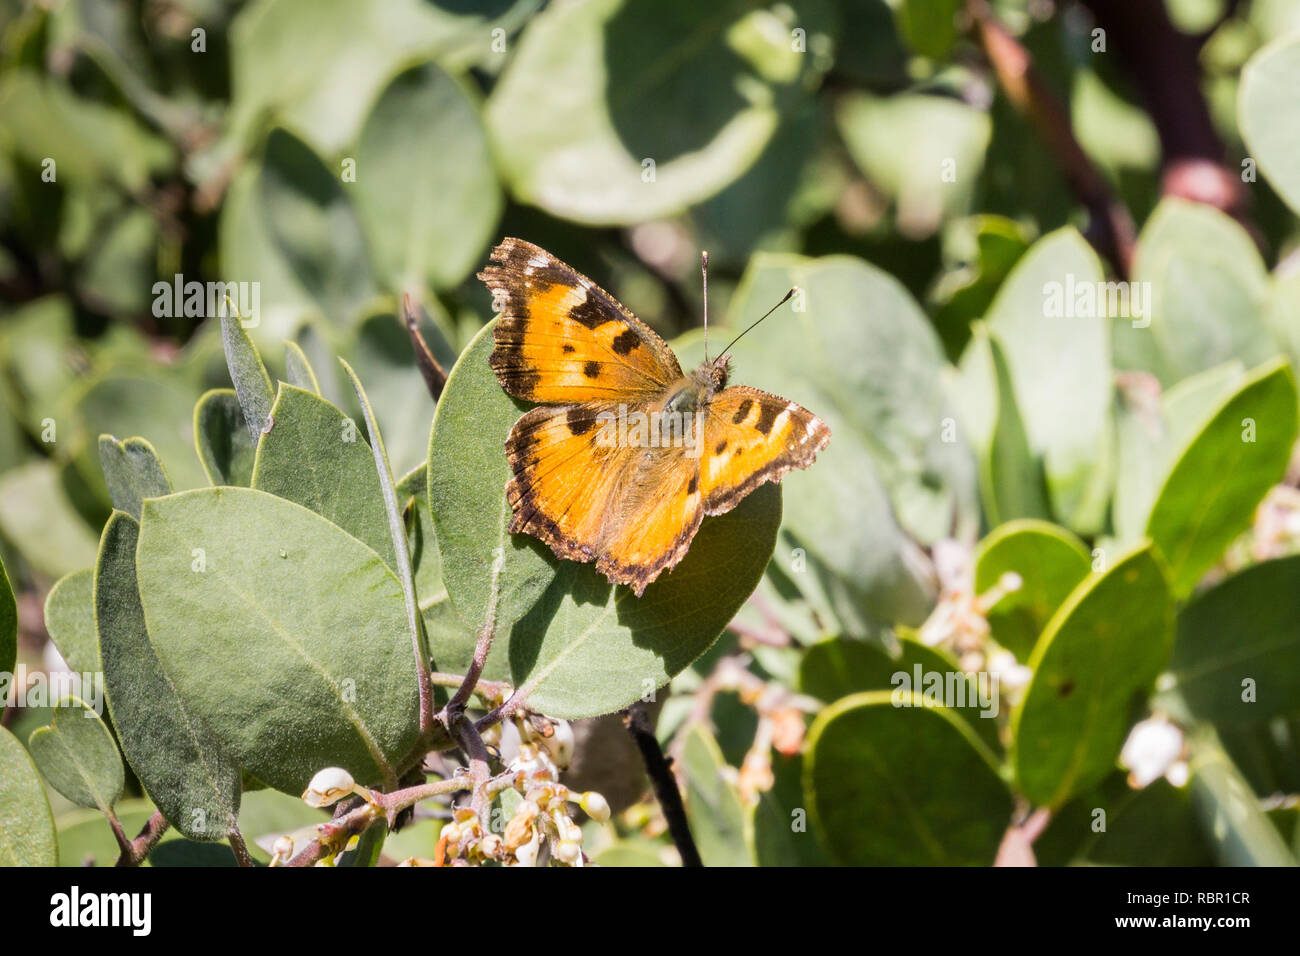 Satyr Comma butterfly (Polygonia satyrus) resting on the leaves of a manzanita tree, California Stock Photo